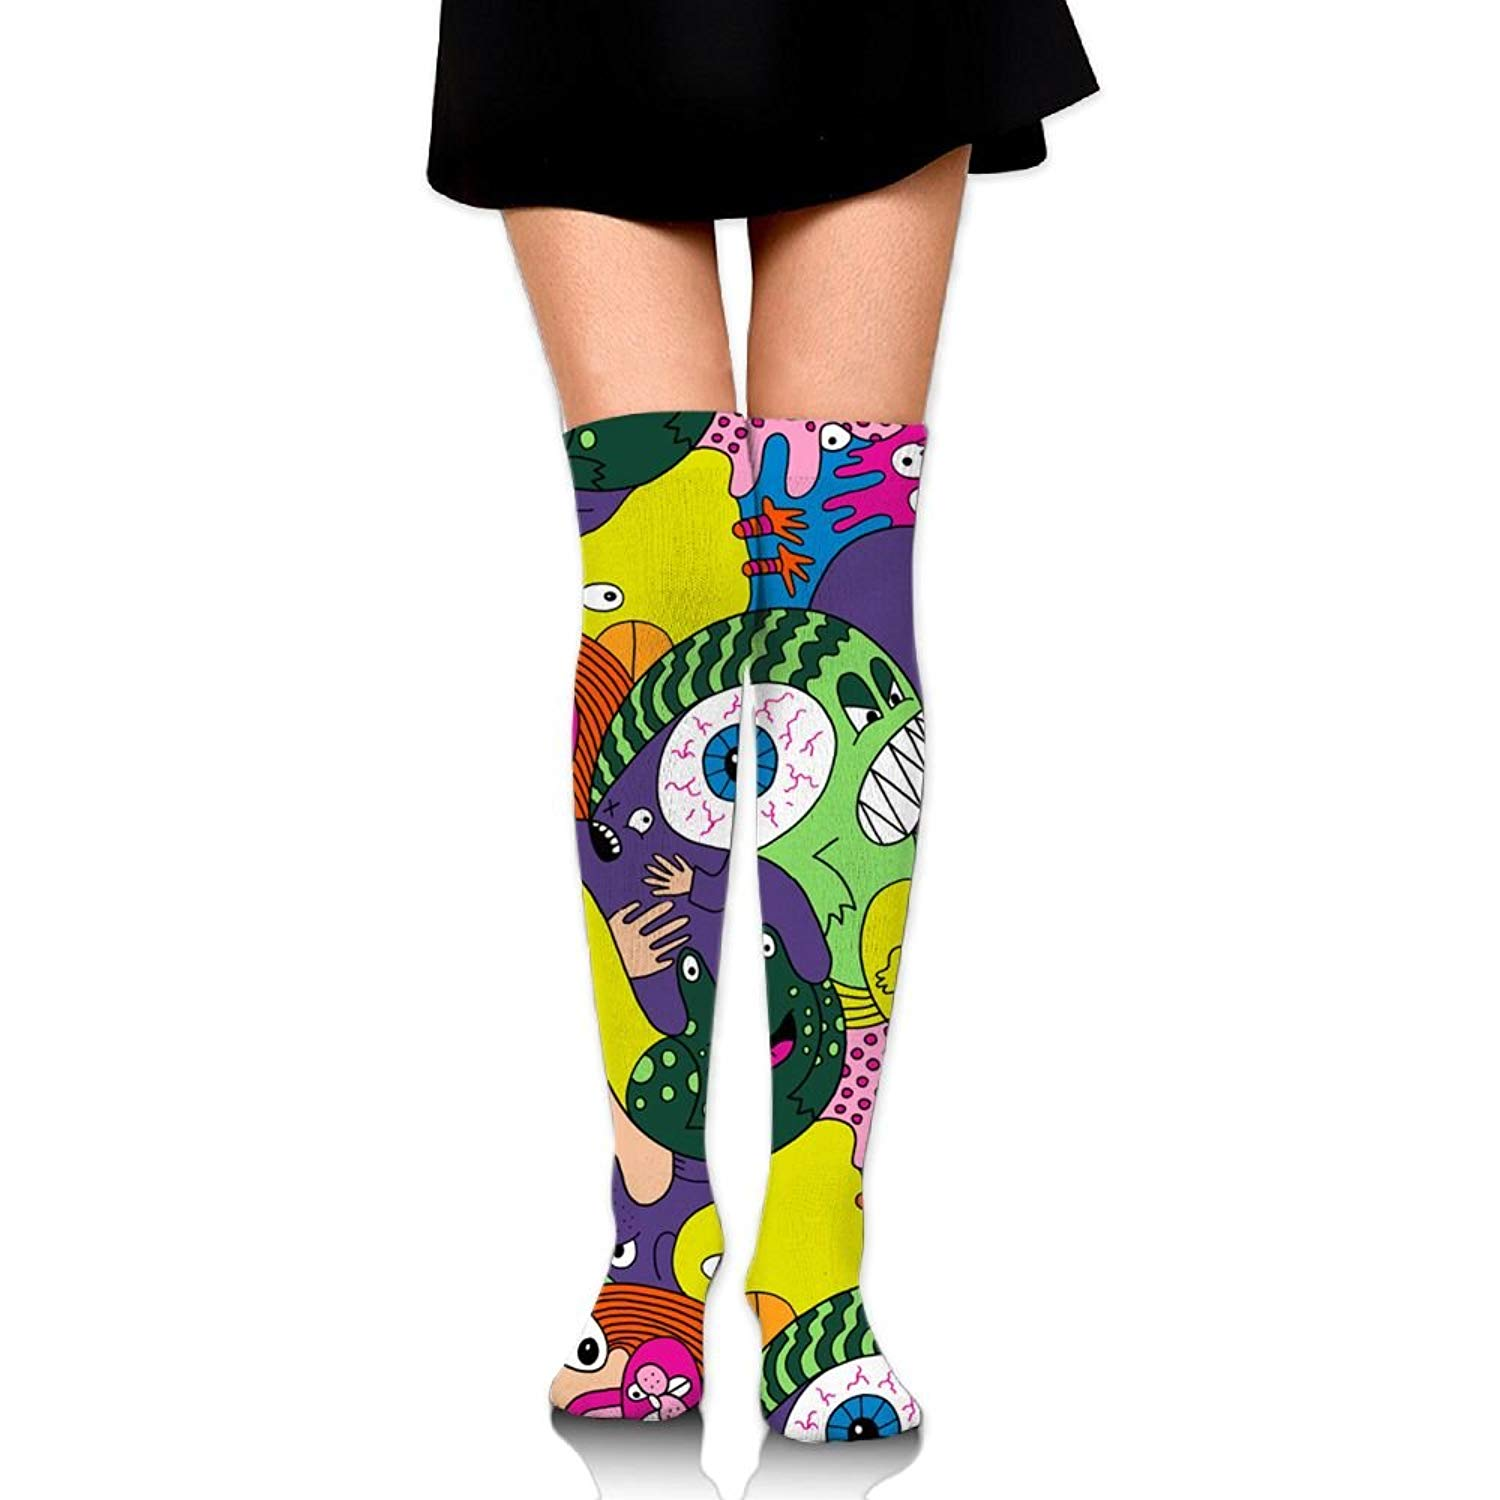 Zaqxsw Alien Eyes Women Vintage Thigh High Socks Thermal Socks For Ladies